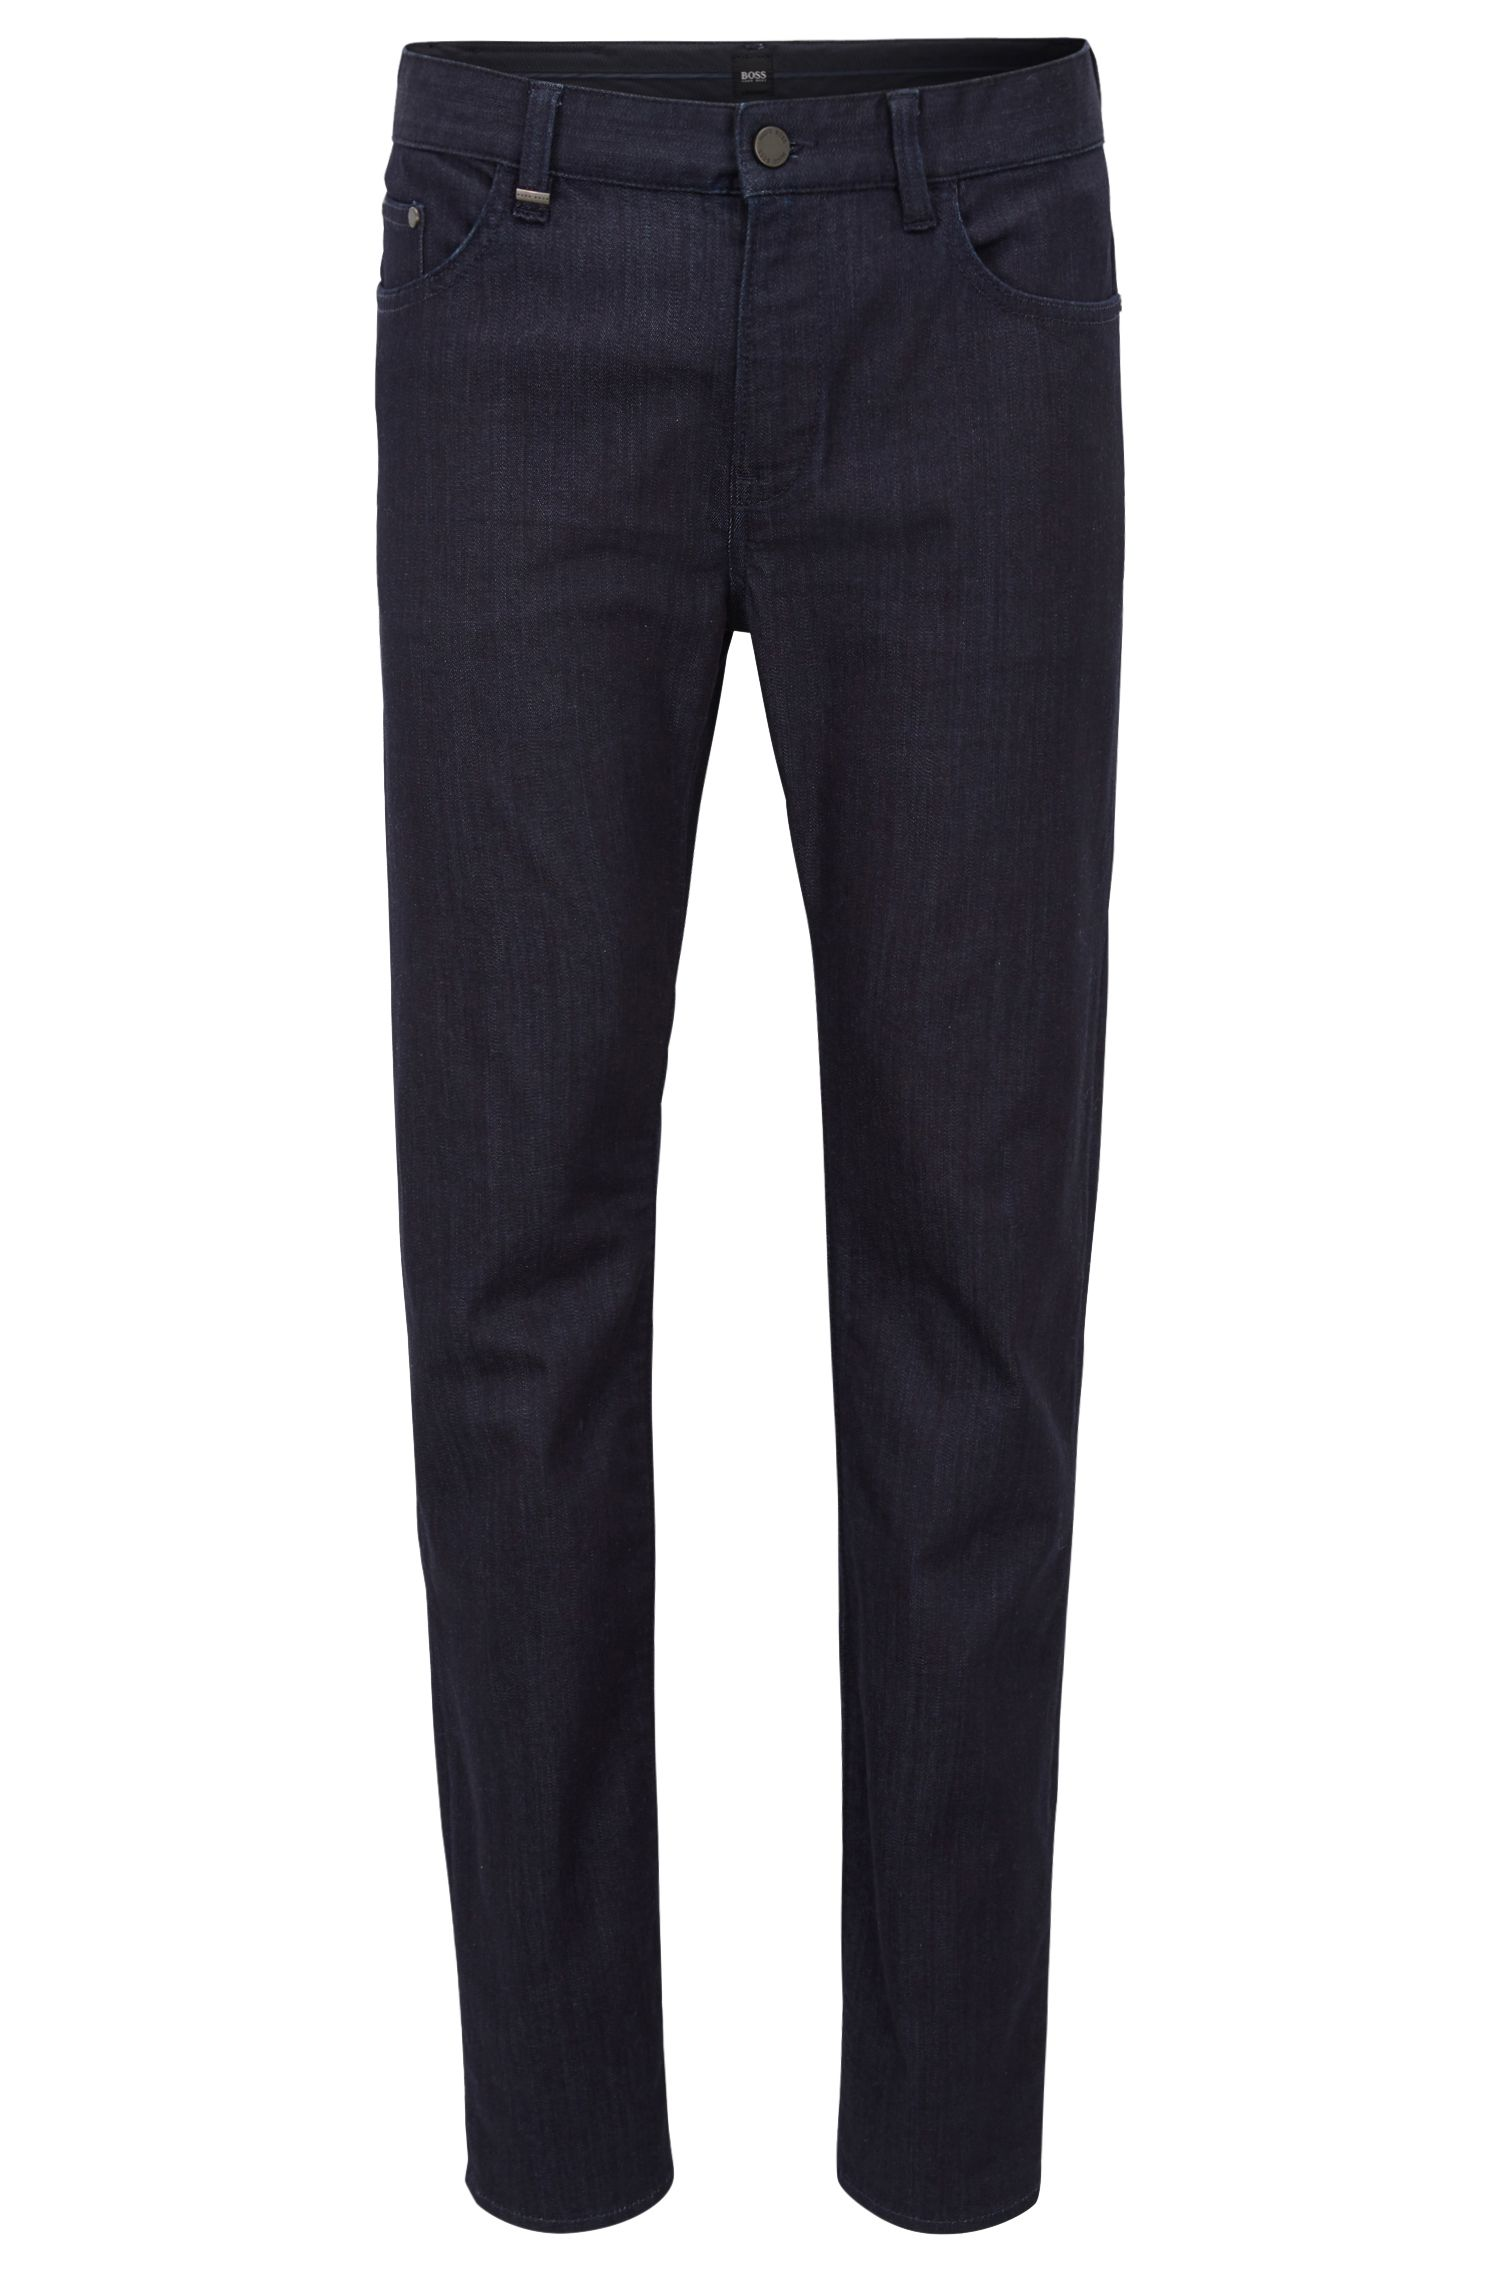 Hugo Boss - Slim-fit jeans in rinse-washed stretch denim - 1